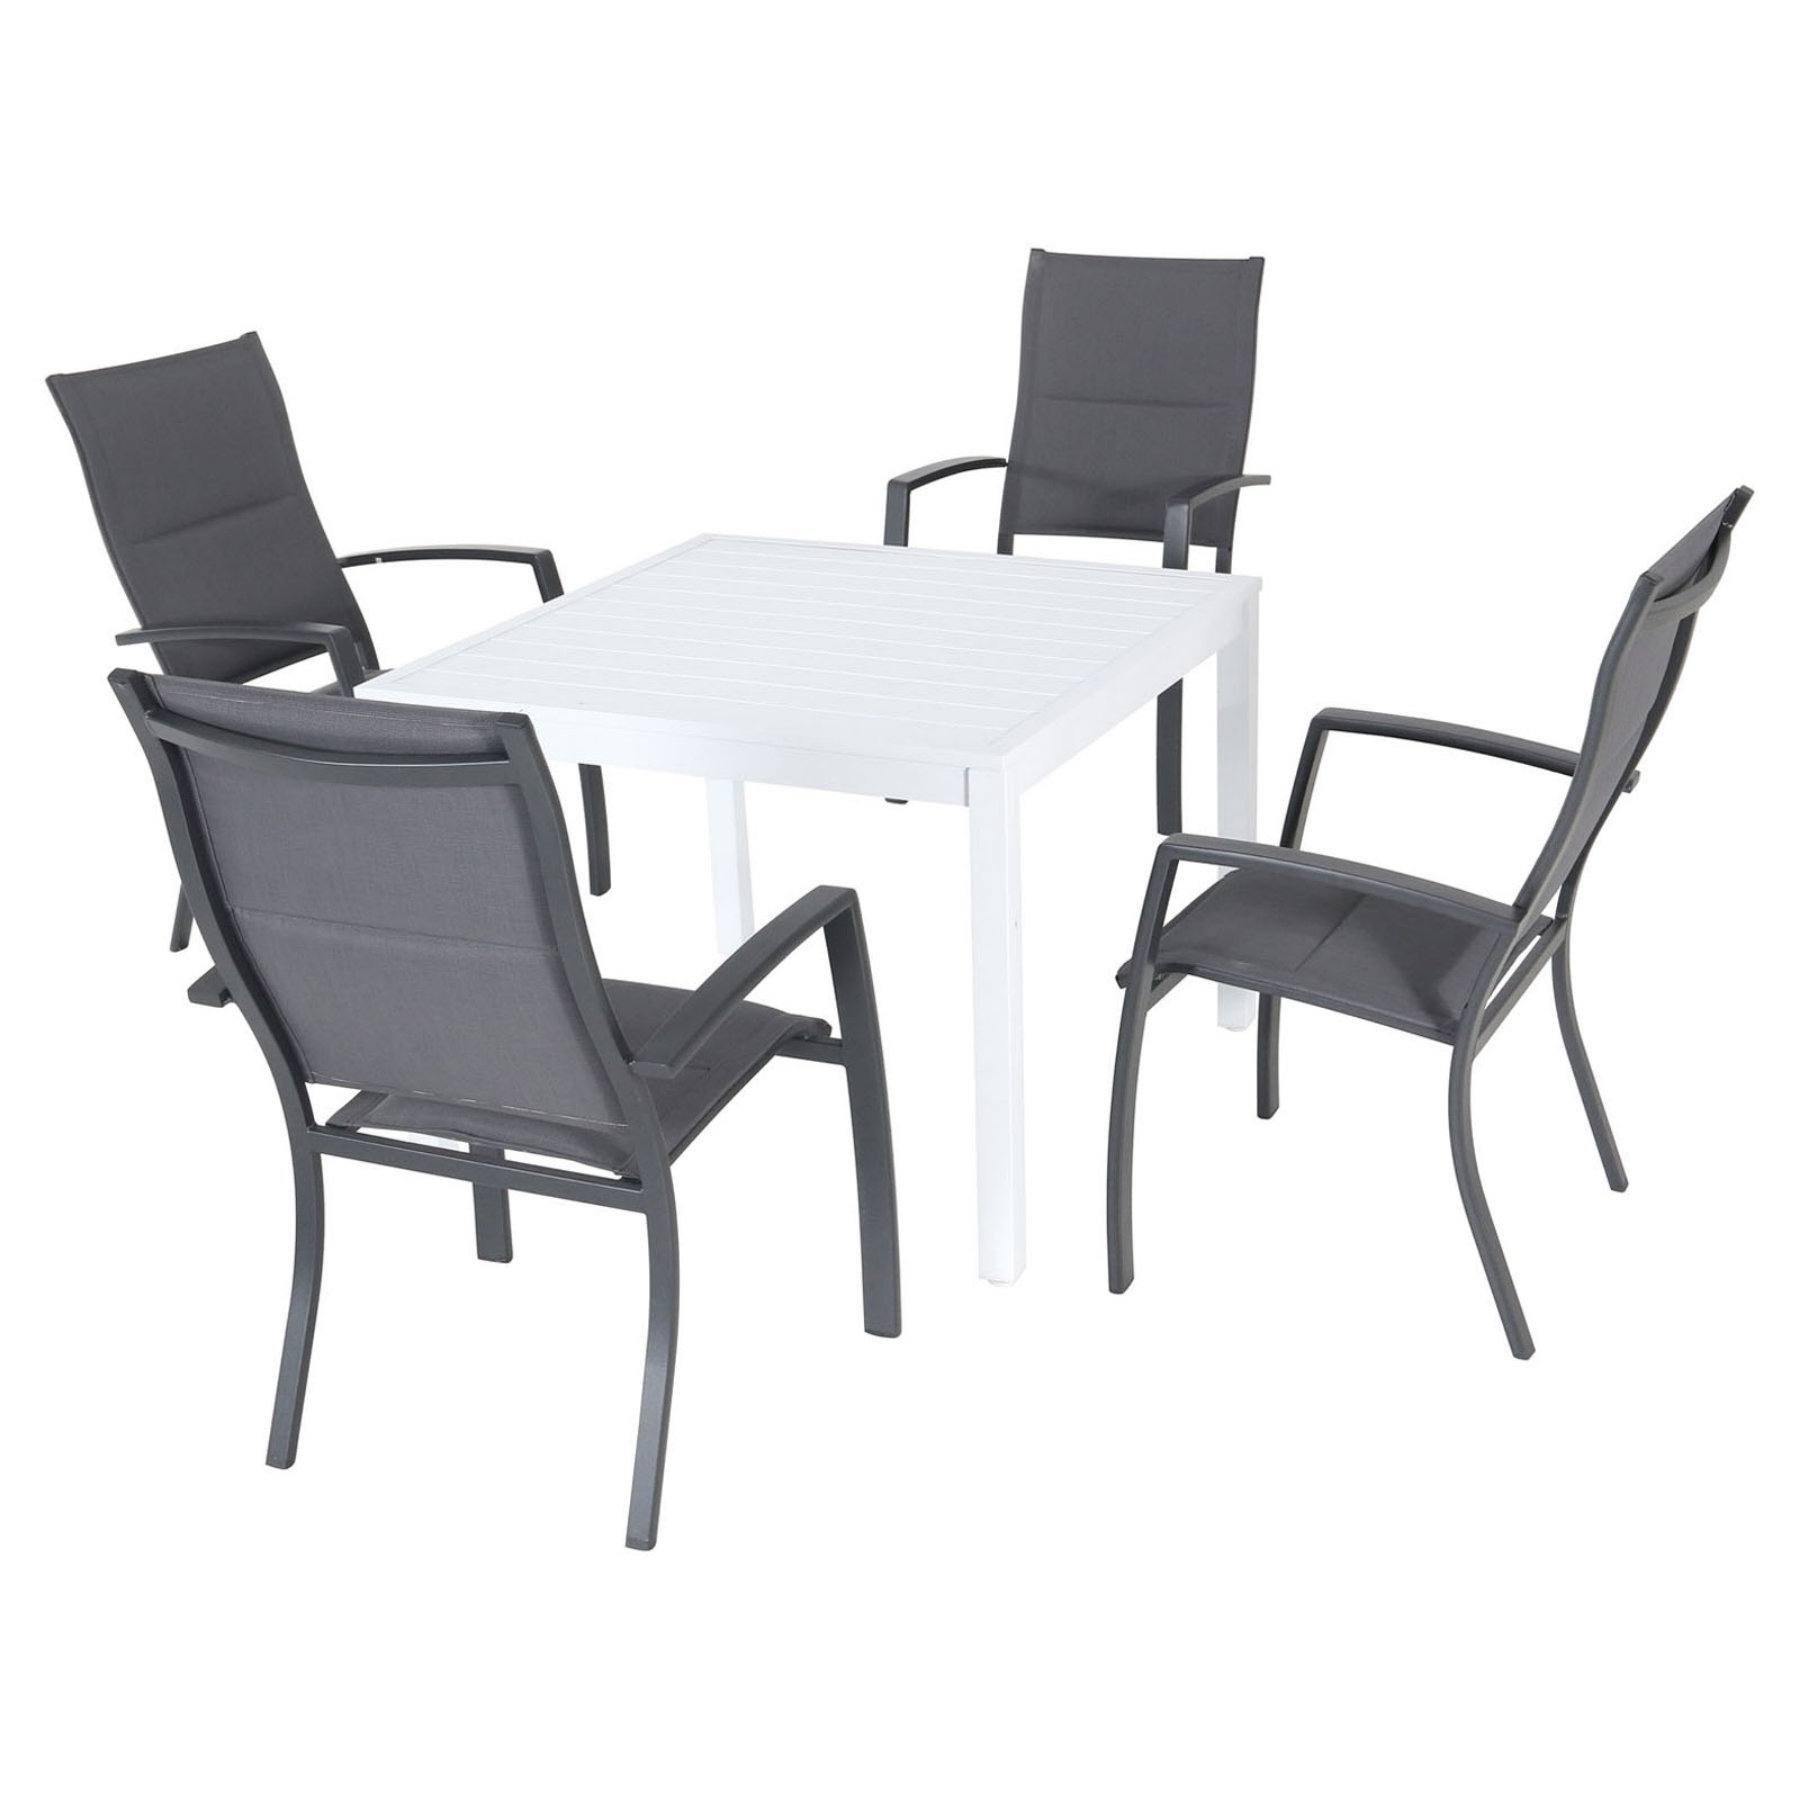 Most Recently Released Hanover Del Mar Aluminum 5 Piece Outdoor Patio Dining Set With In Delmar 5 Piece Dining Sets (View 9 of 25)